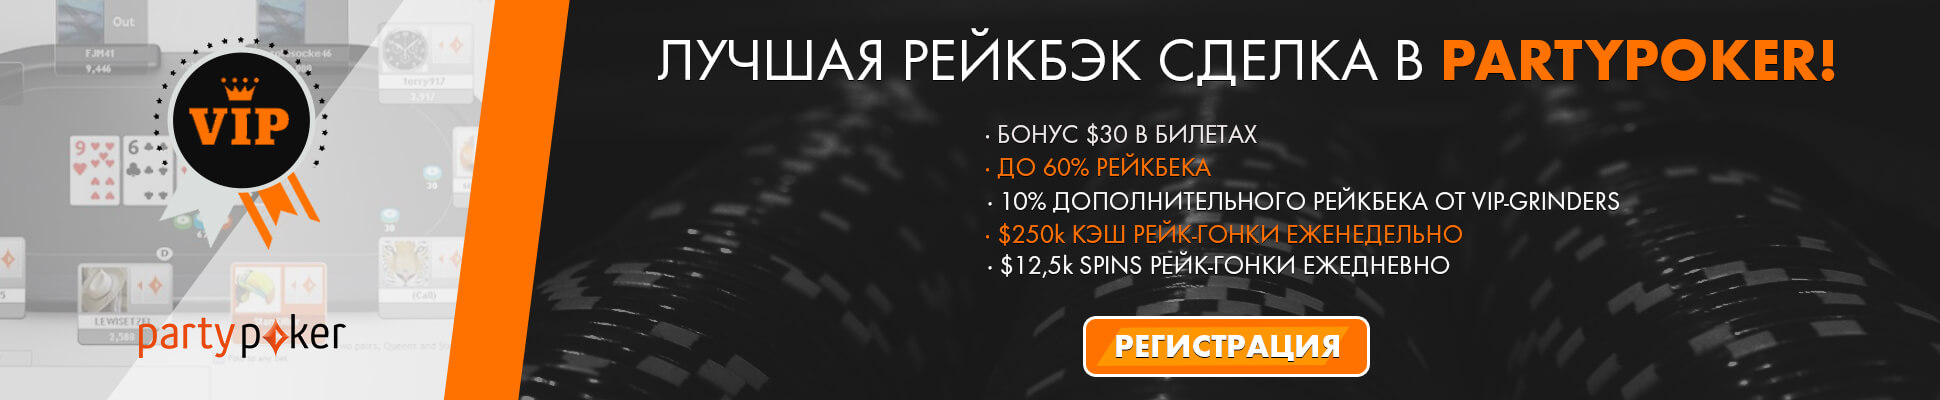 partypoker new banners slider version 1 RU may